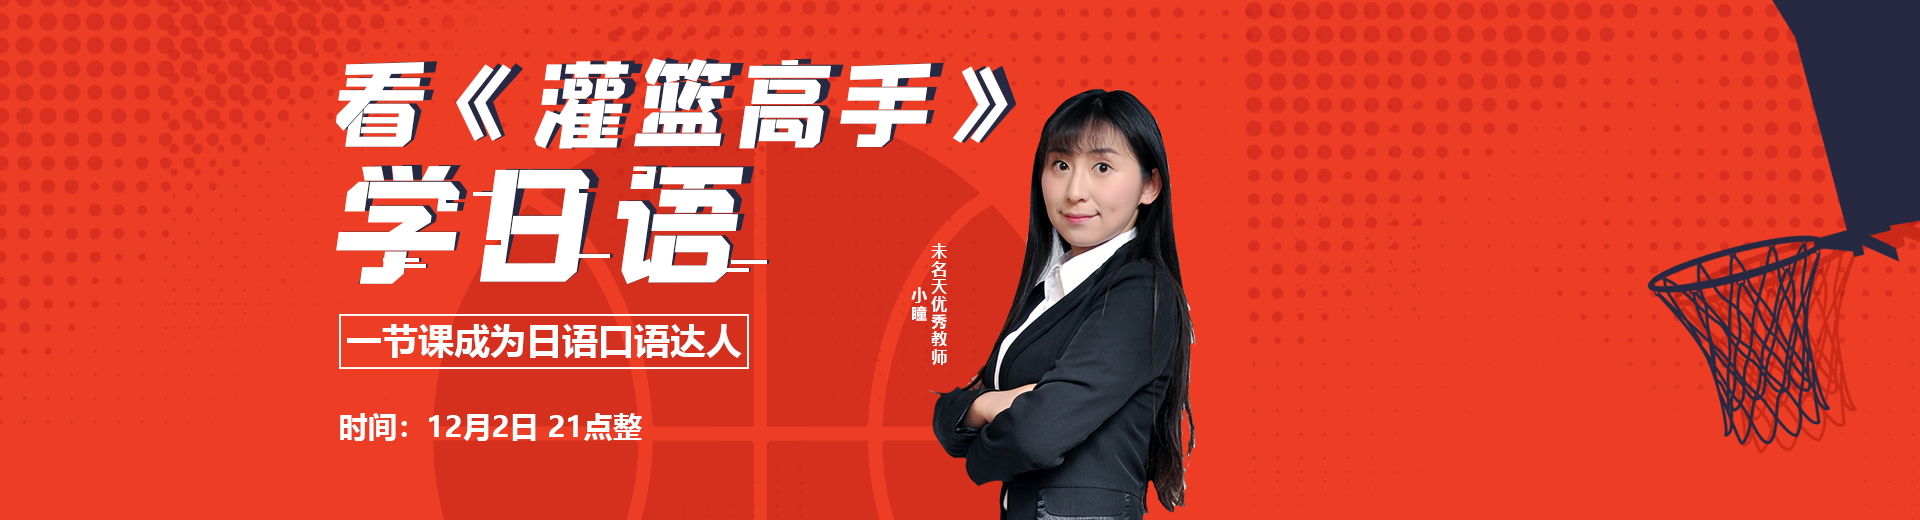 PC-首页轮播banner-公开课1202